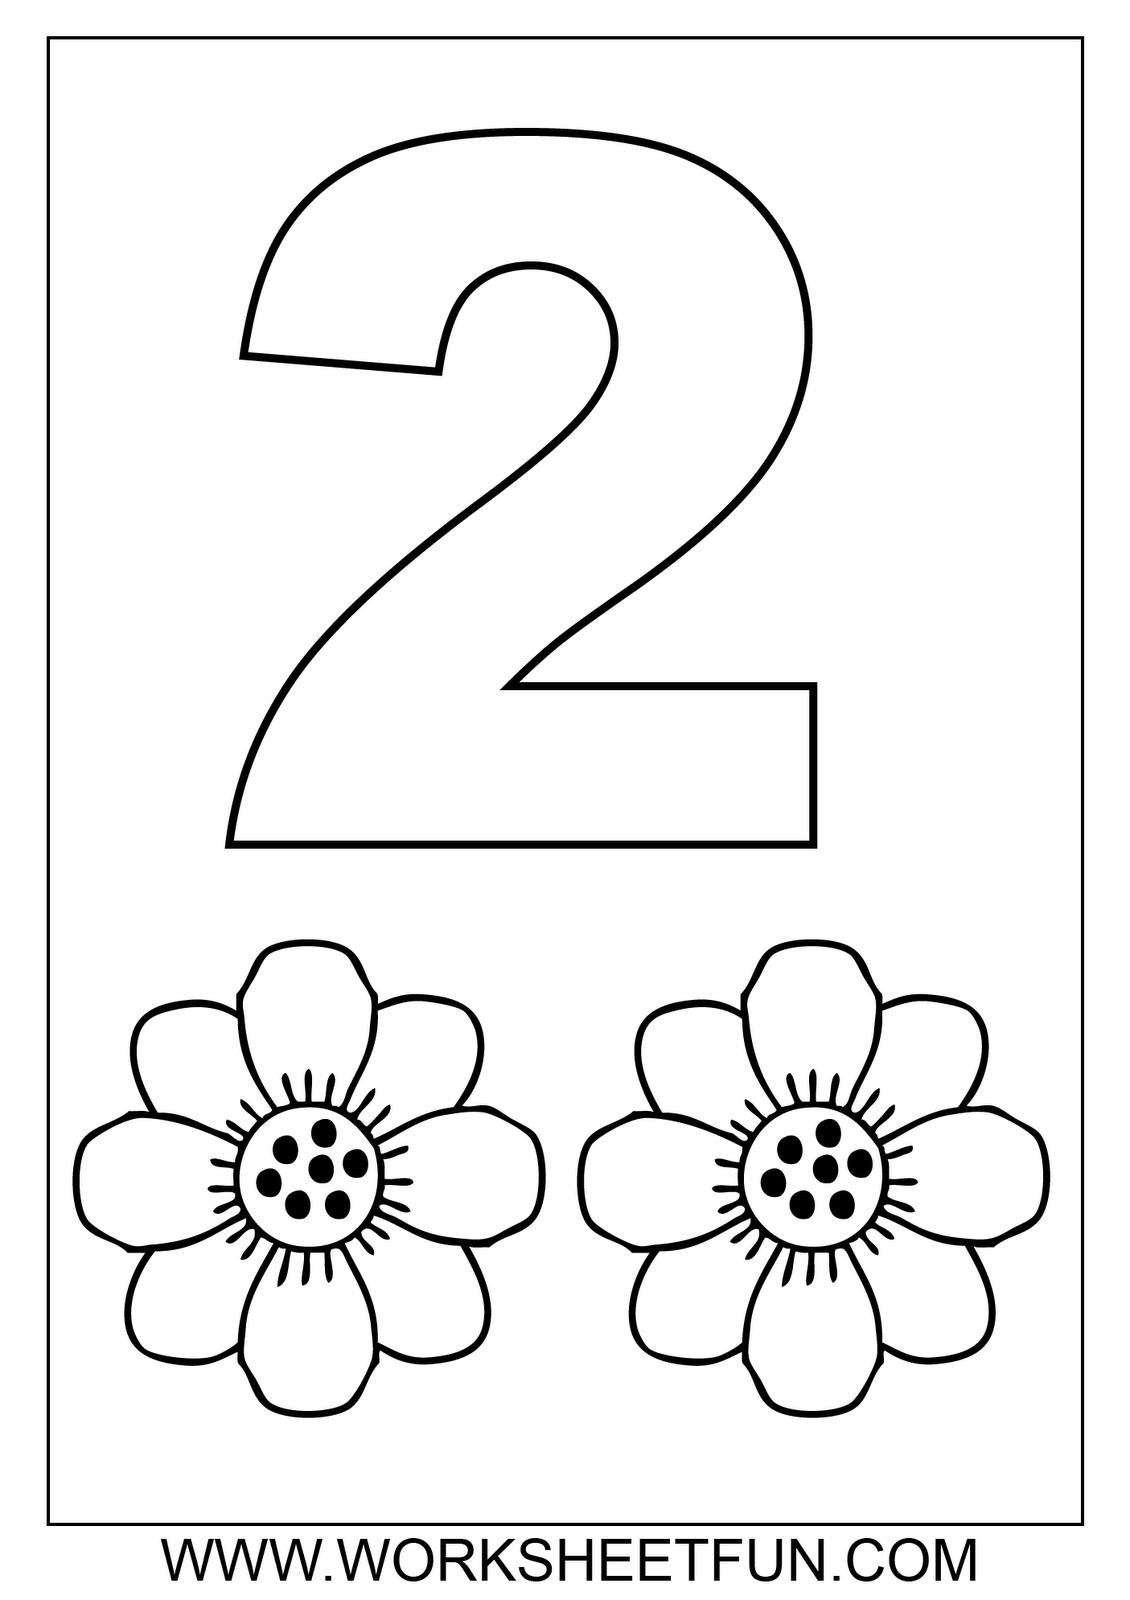 printable coloring pages number 4 - photo#39